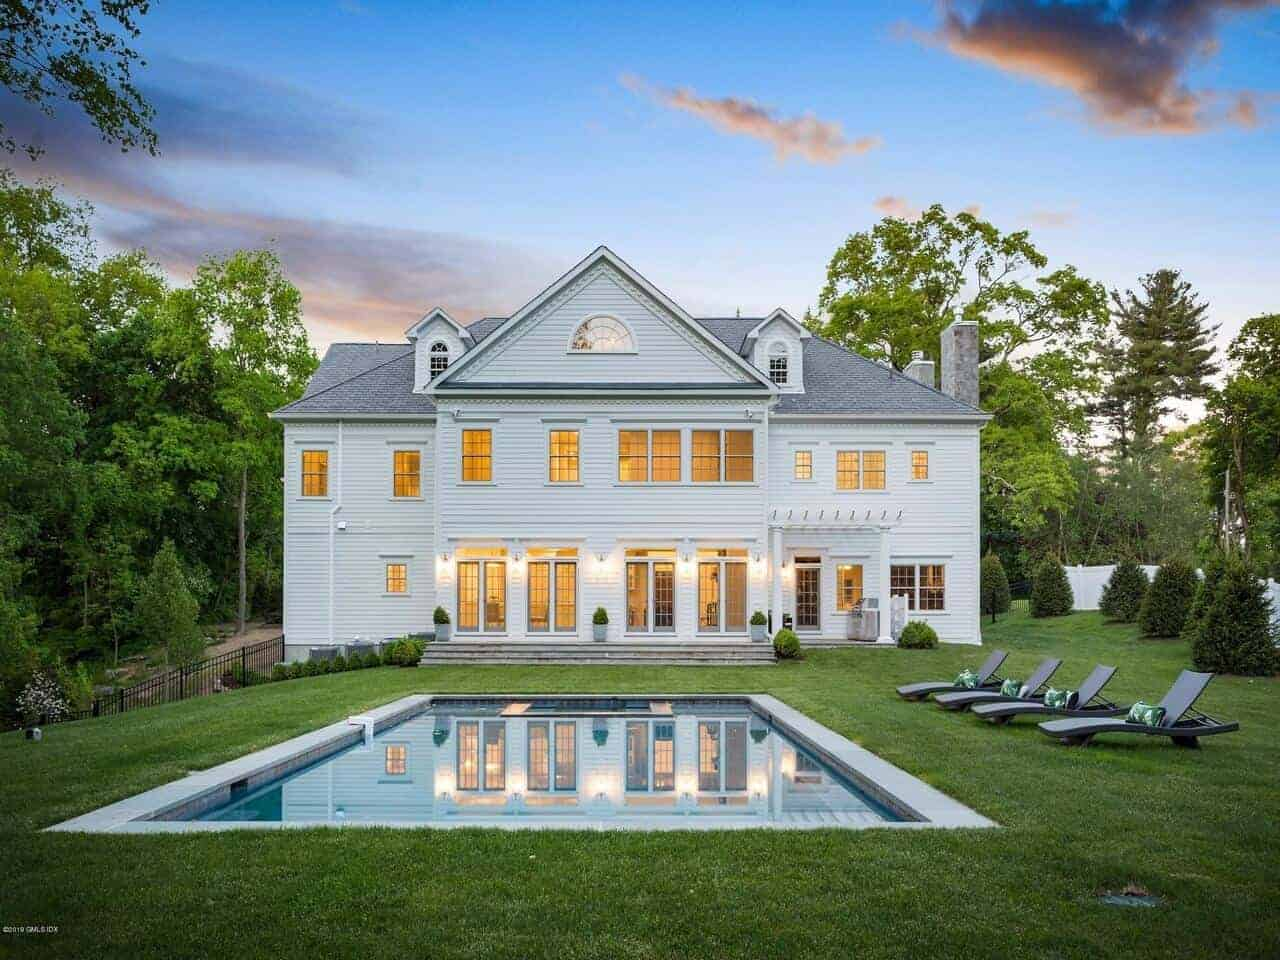 Transitional Georgian Style Colonial Home by Award Winning Architect Joseph Cugno